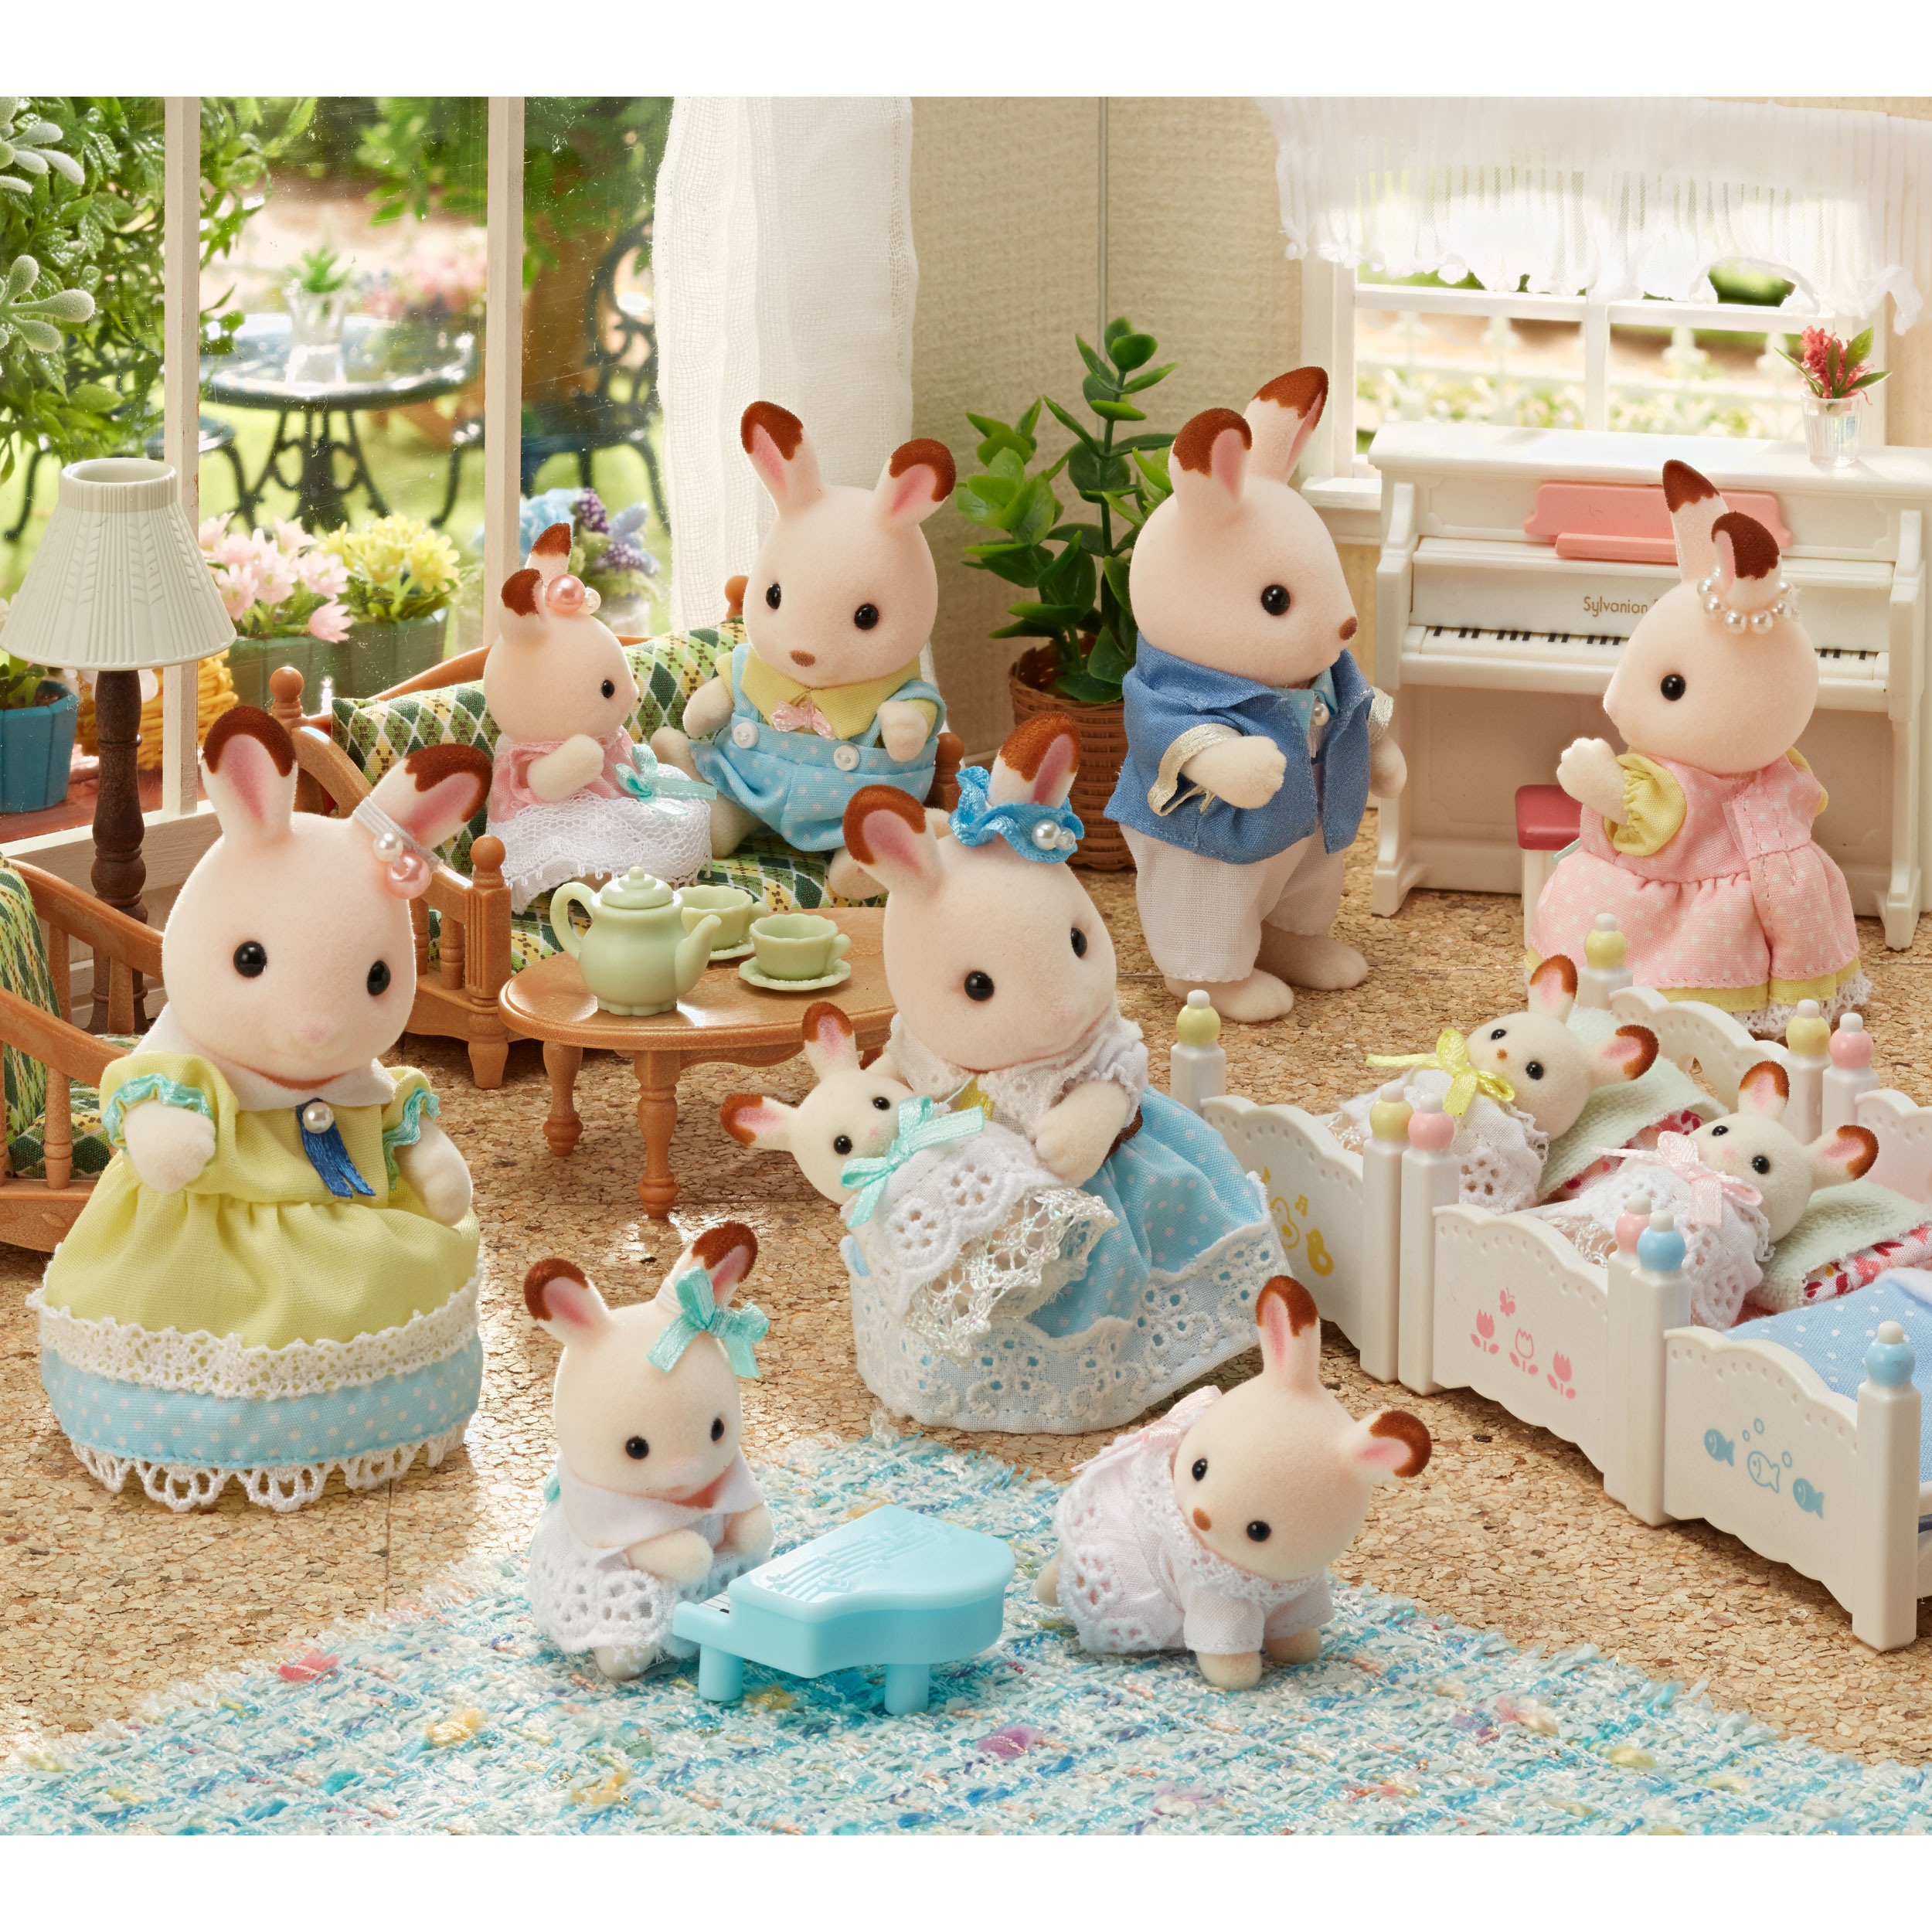 Adorable New Woodland Characters Mark The 35th Anniversary Of Sylvanian Families